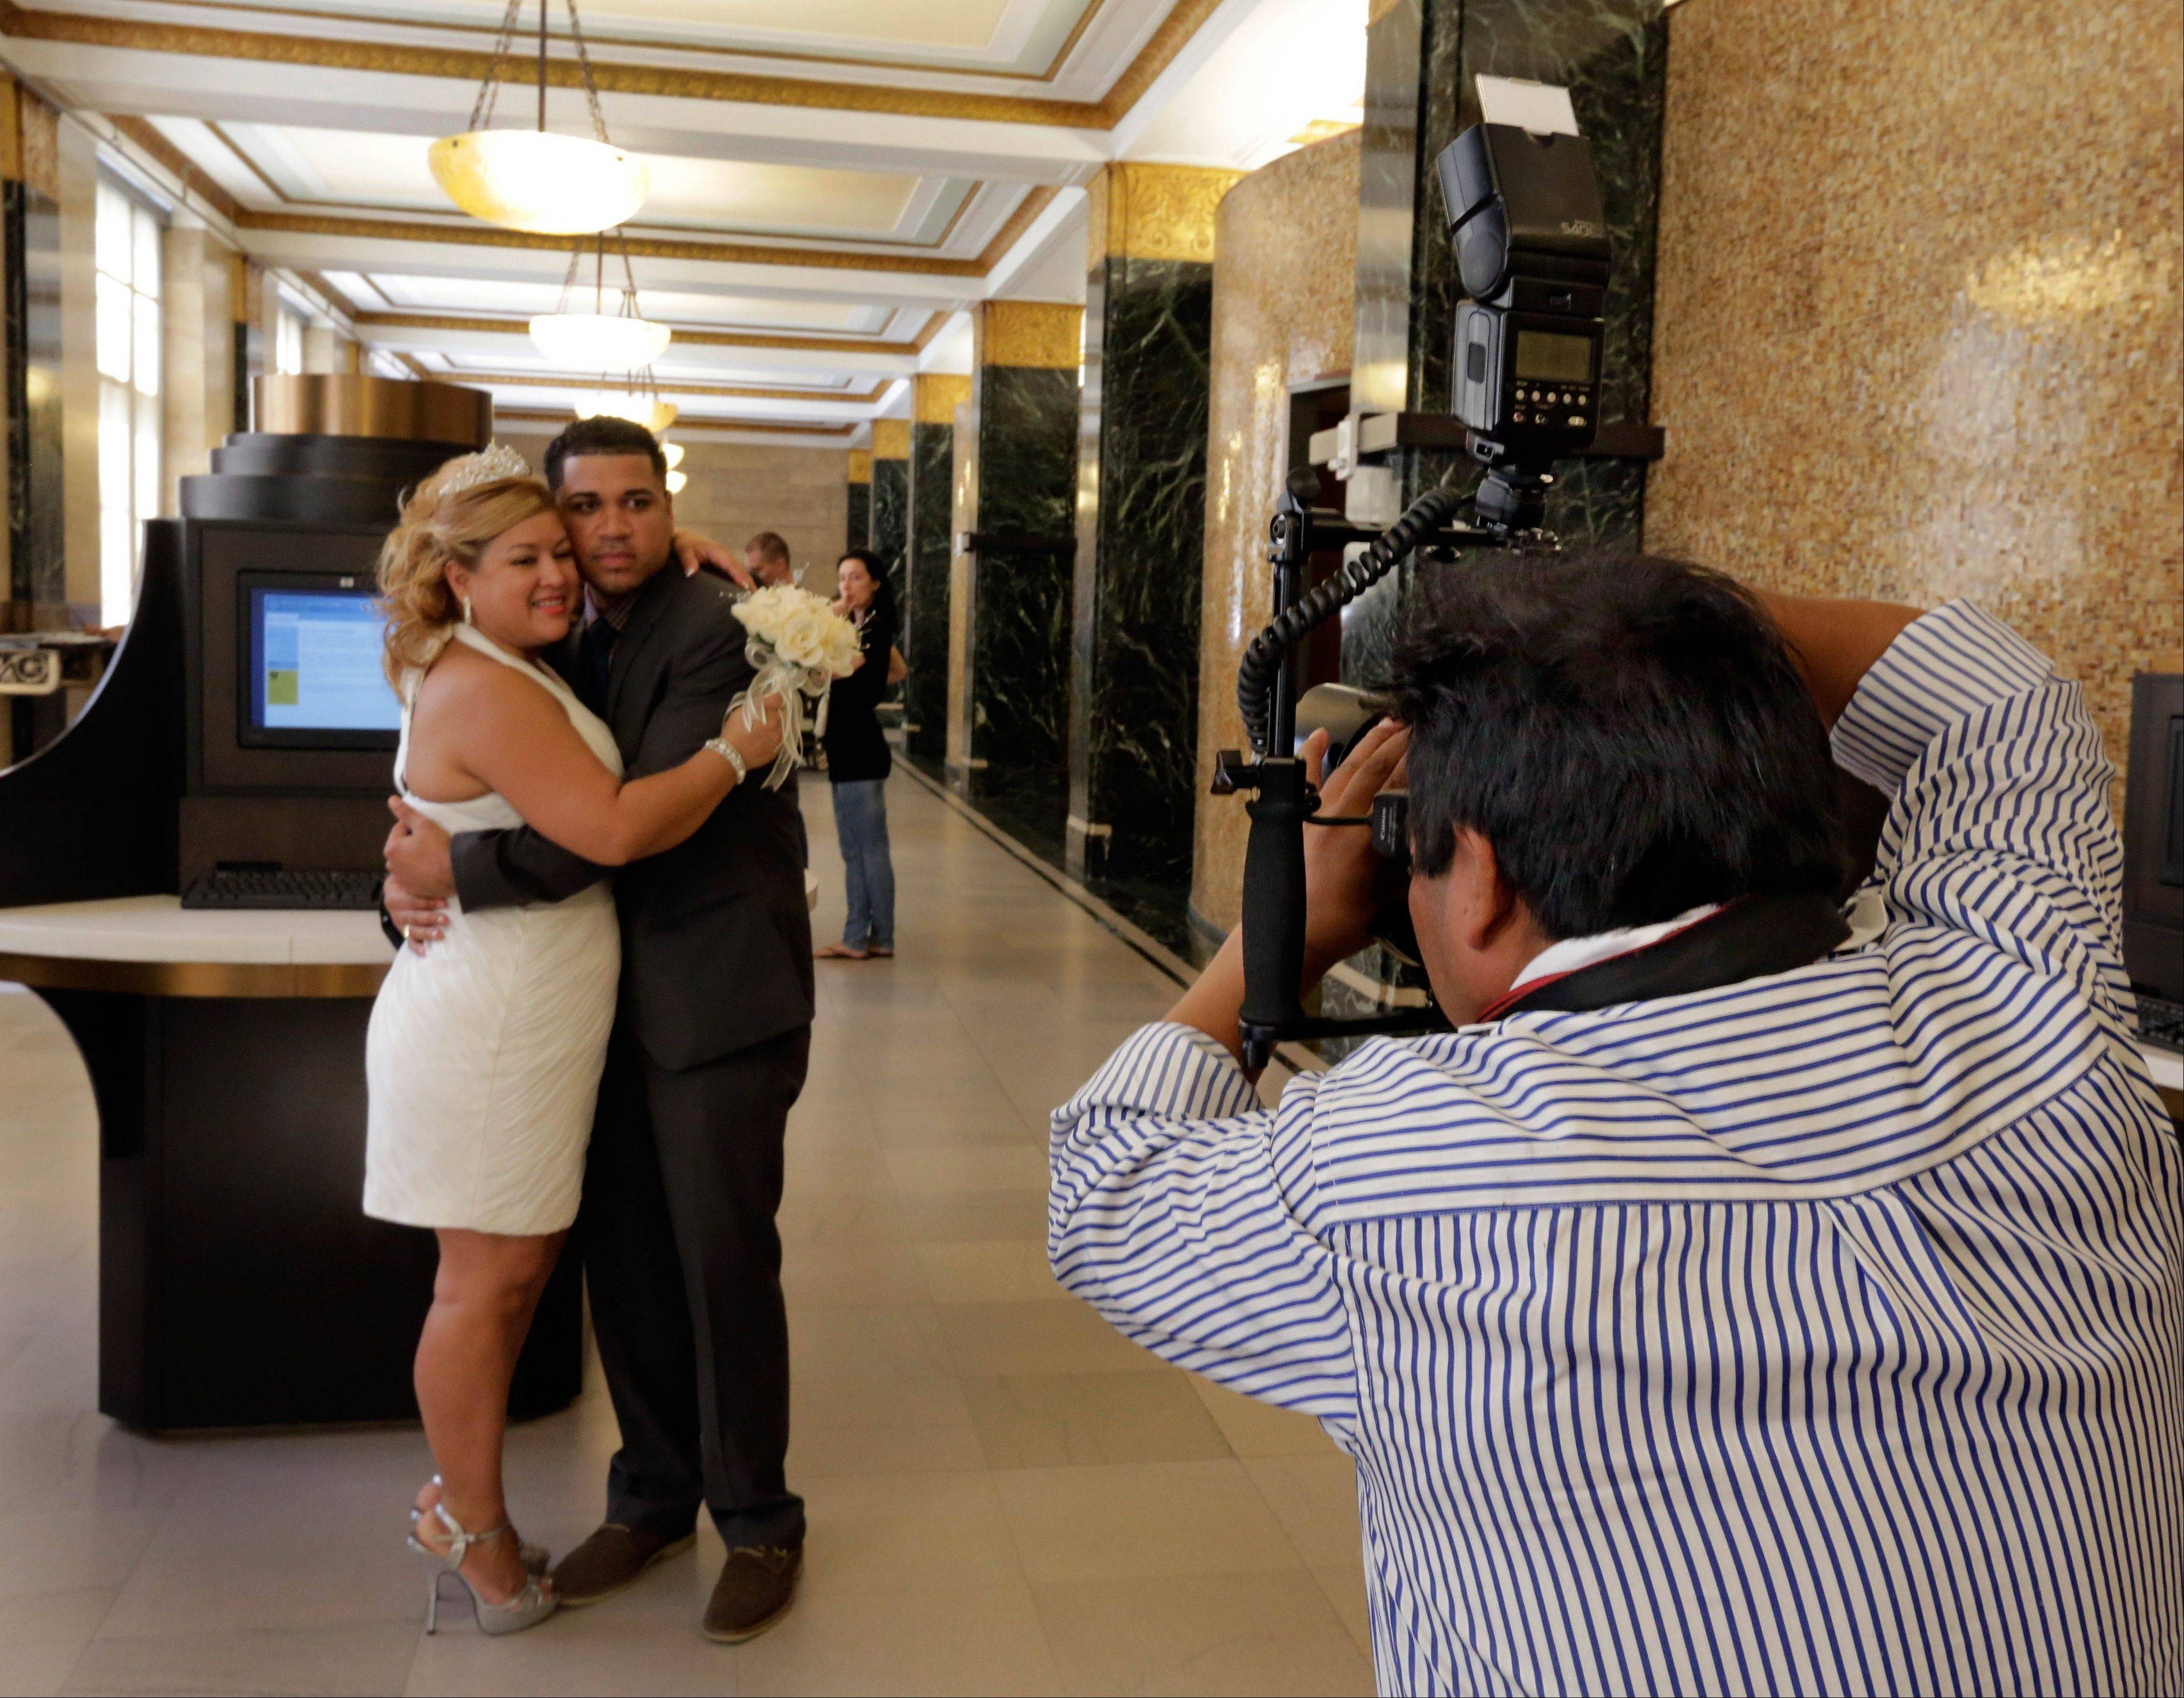 Wedding photographer Braulio Cuenca poses groom Jorge Mejia and bride Irma Aguilar, of the Bronx borough of New York, before their ceremony in New York's Office of the City Clerk.